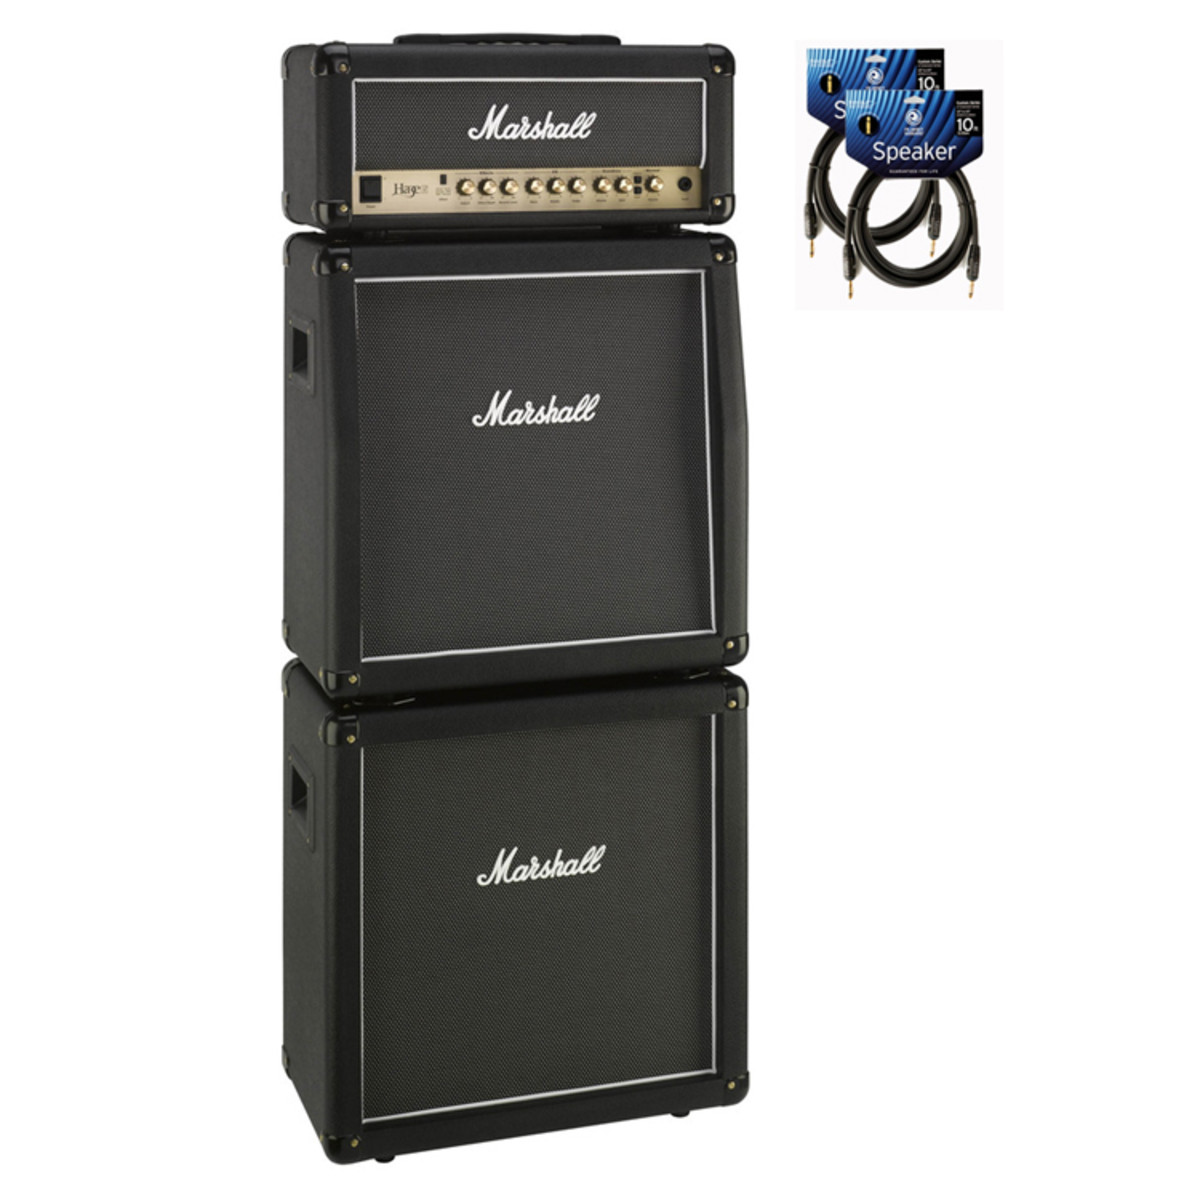 Marshall Haze Mhz15 Amp Head Amp Cabinet Full Stack Bundle